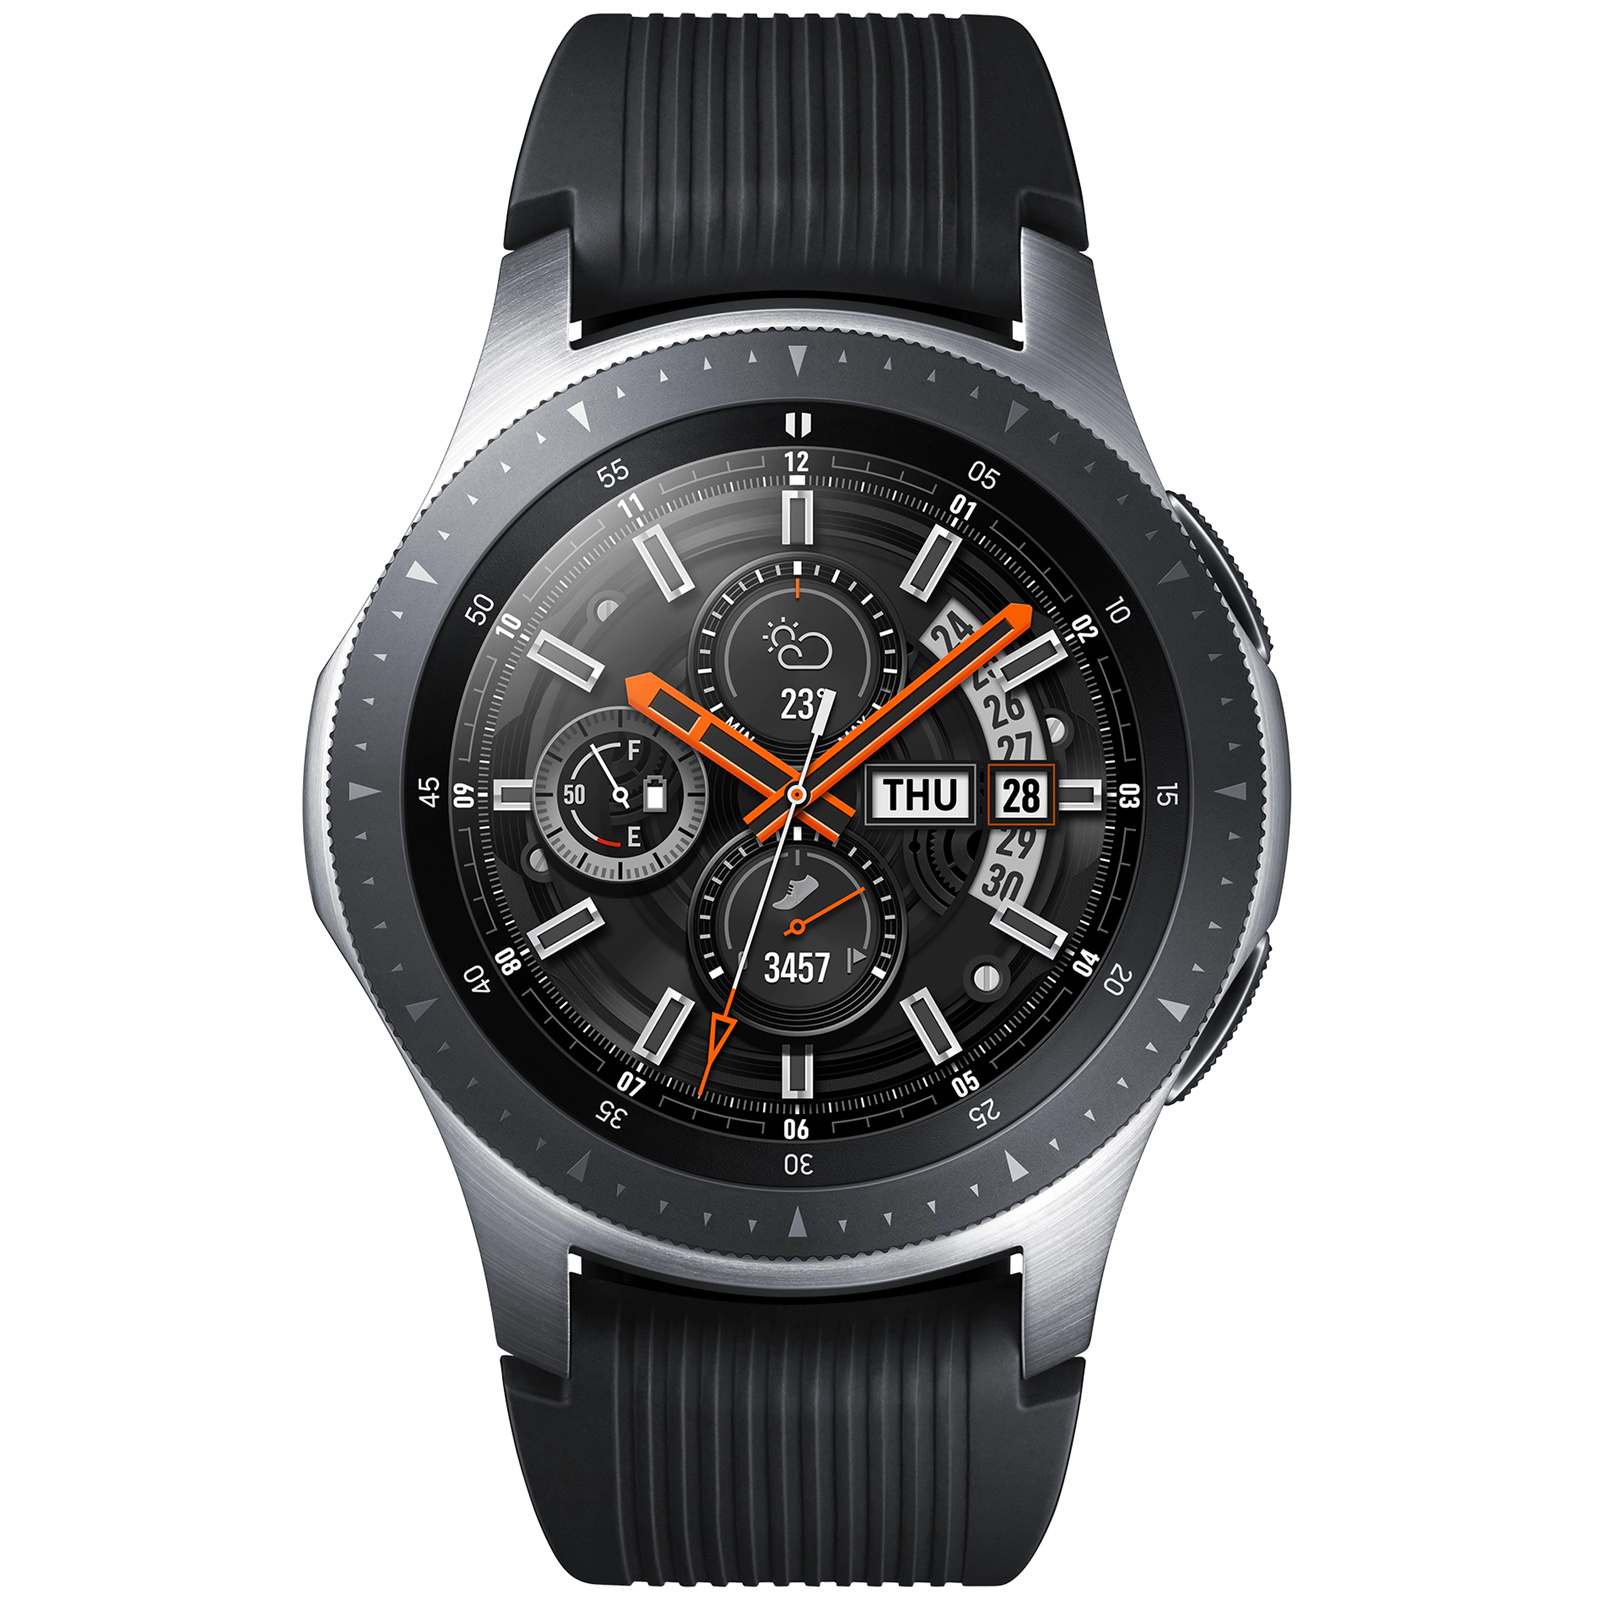 c00e30460e8 Buy the Samsung Galaxy Watch (46mm) - Silver